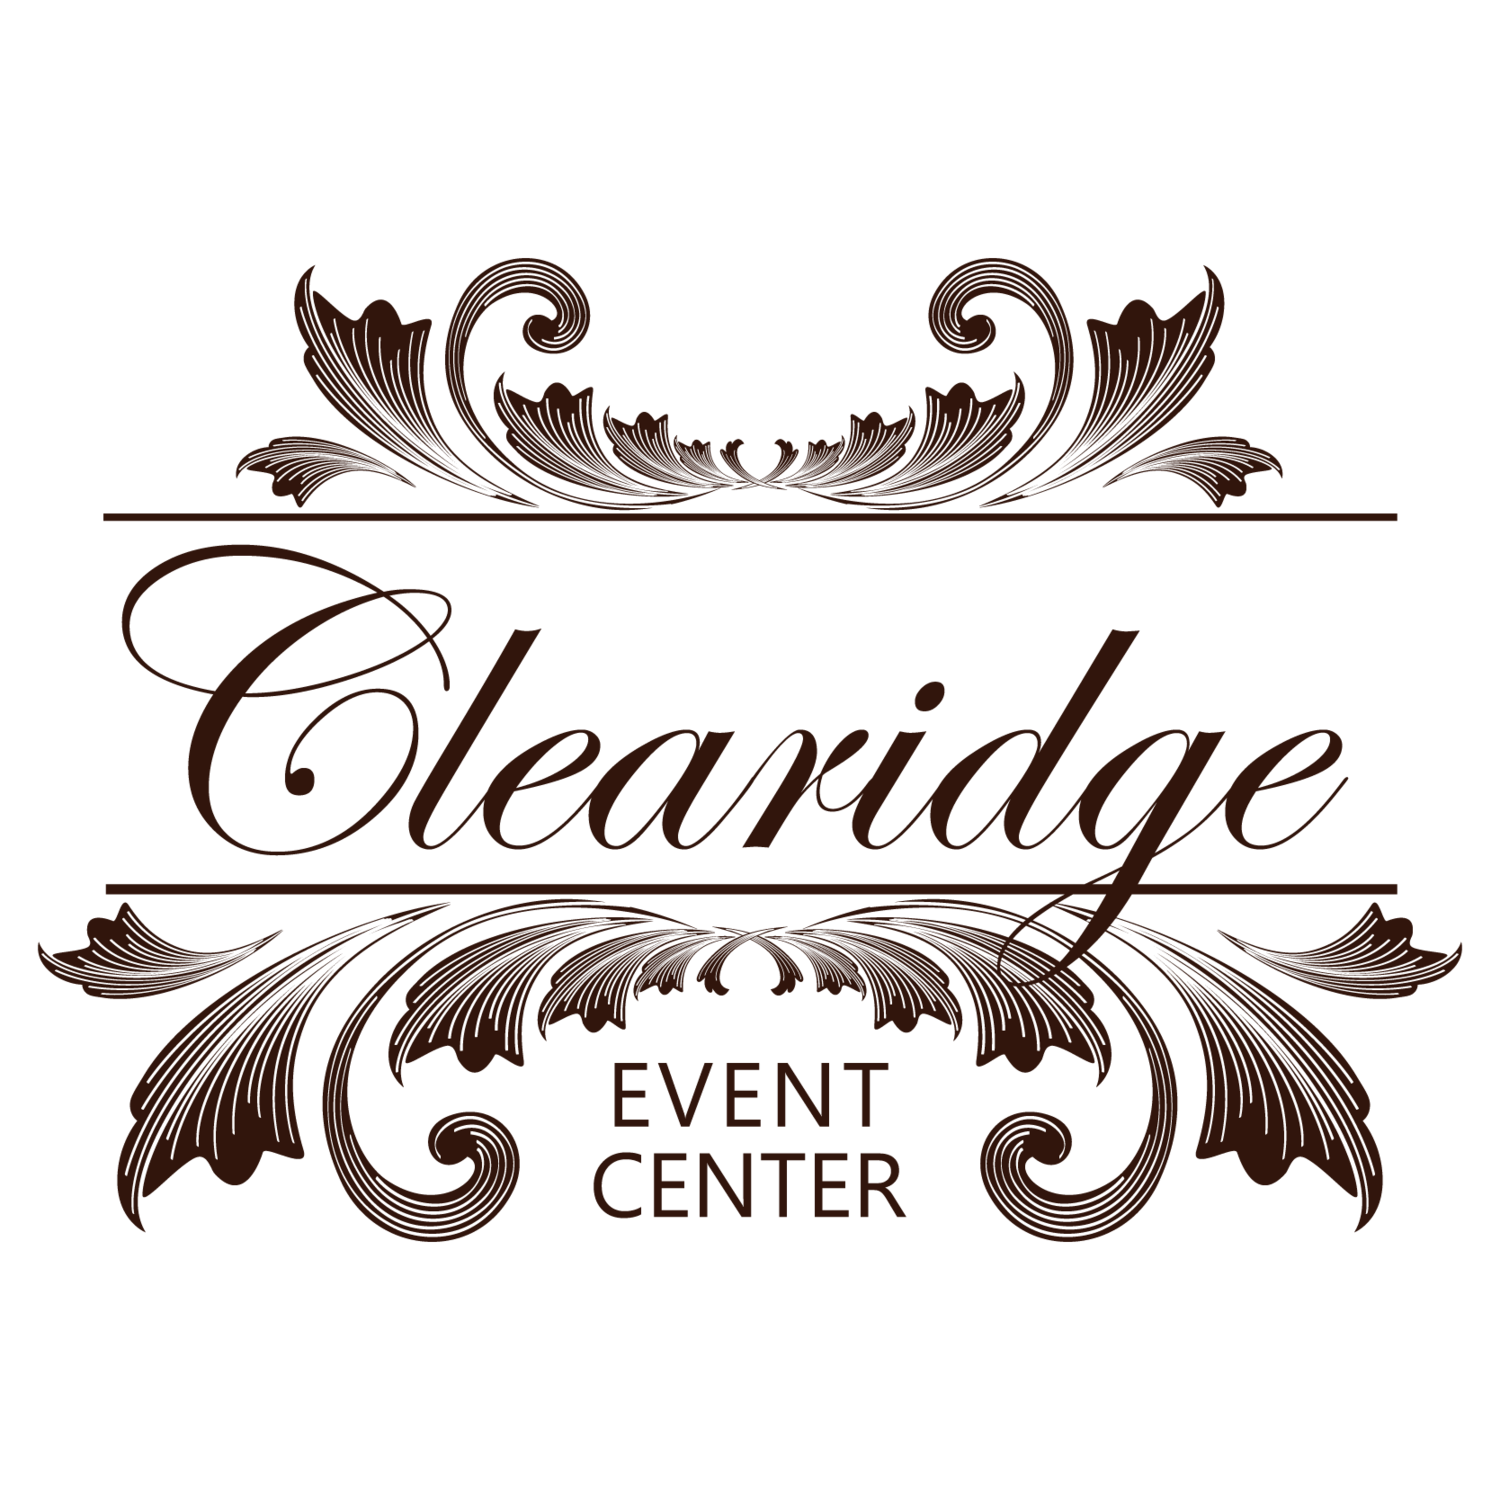 Clearidge Event Center